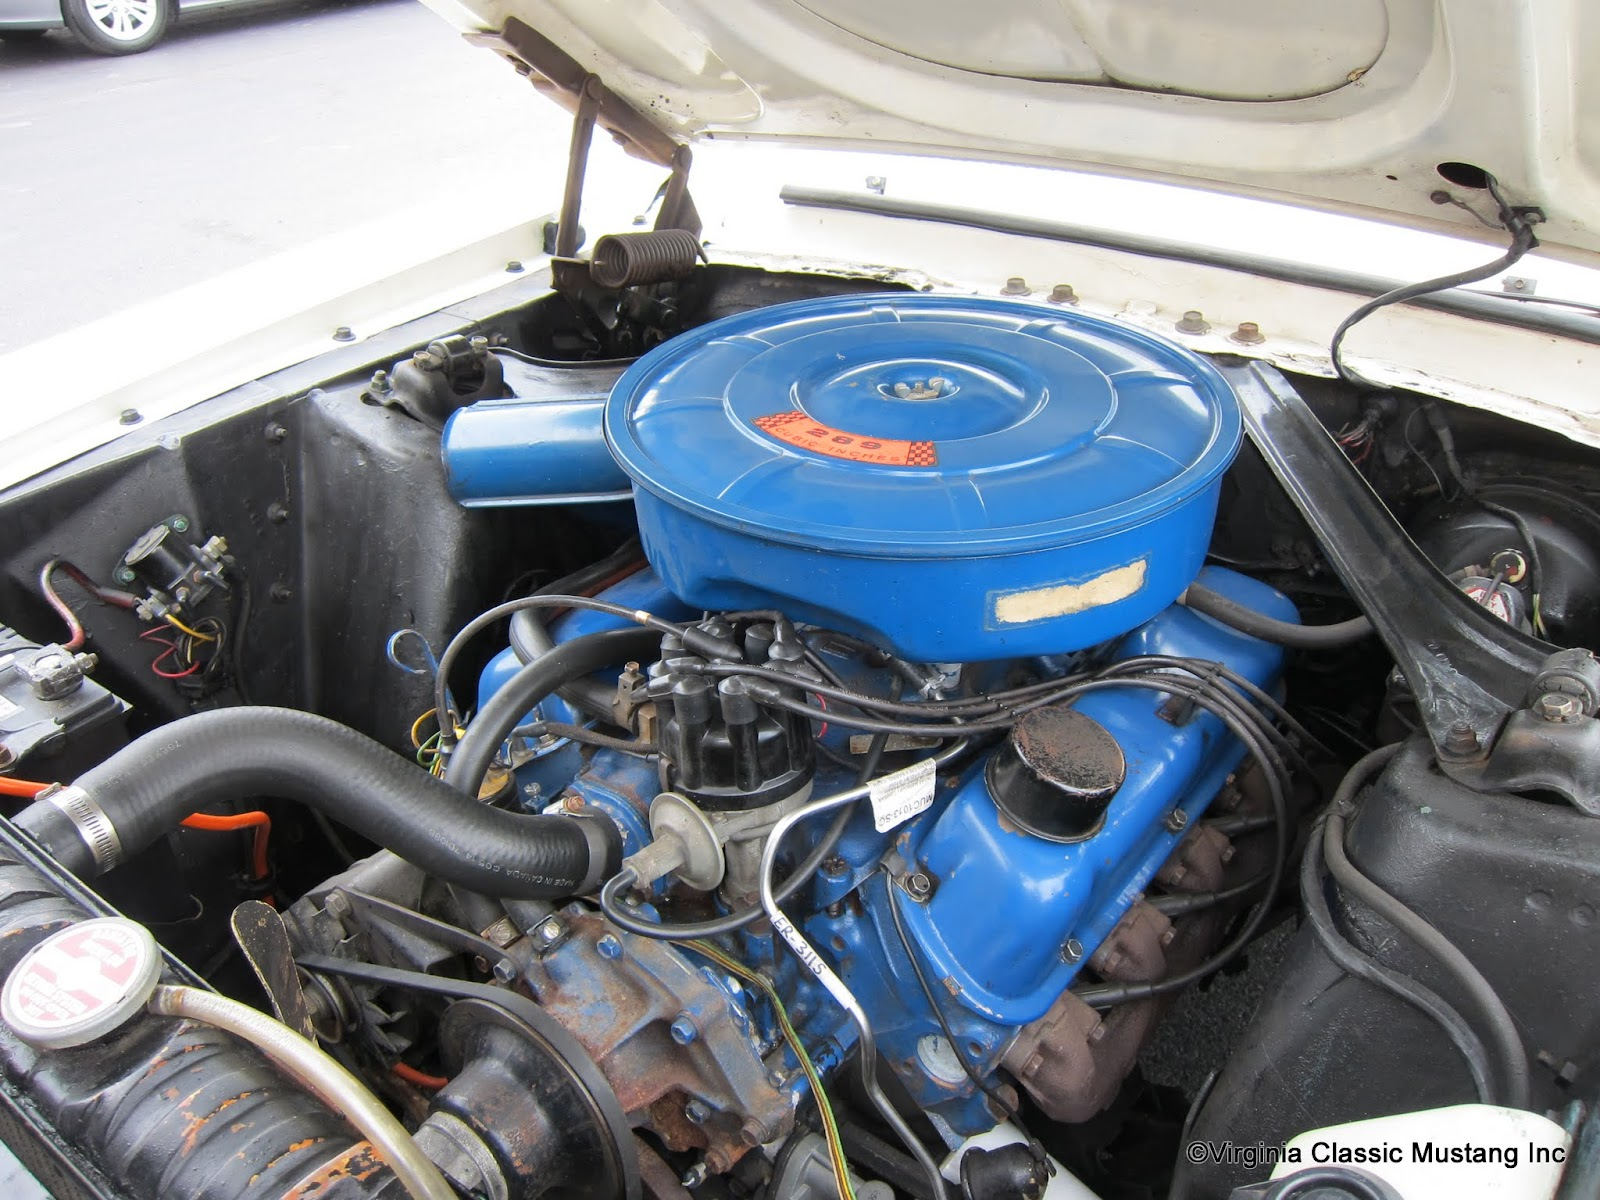 1967 gt mustang coupe 289 4v engine the paint on the engine is original [ 1600 x 1200 Pixel ]